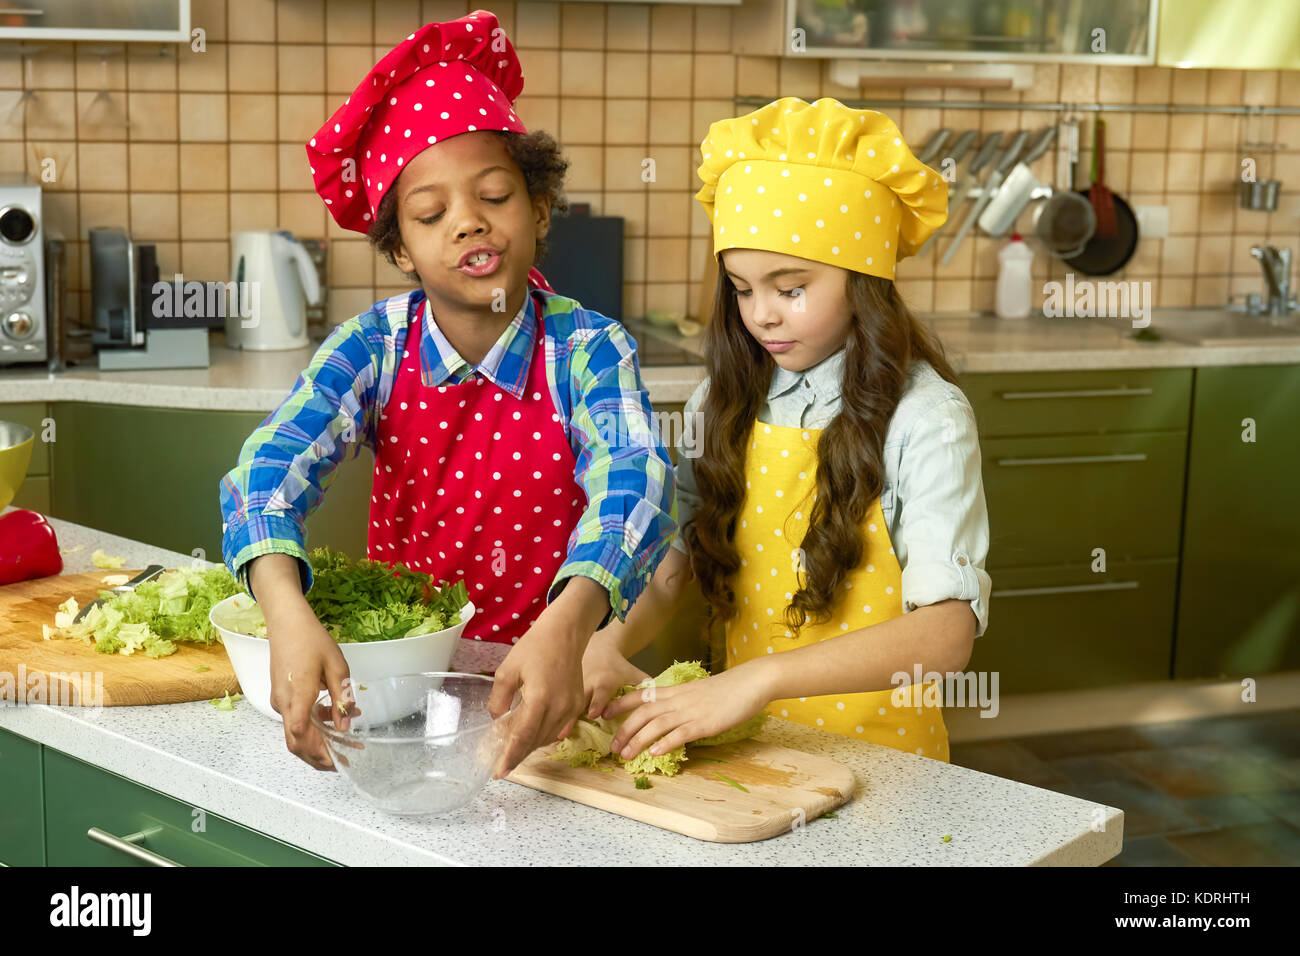 Boy and girl cooking, kitchen. - Stock Image